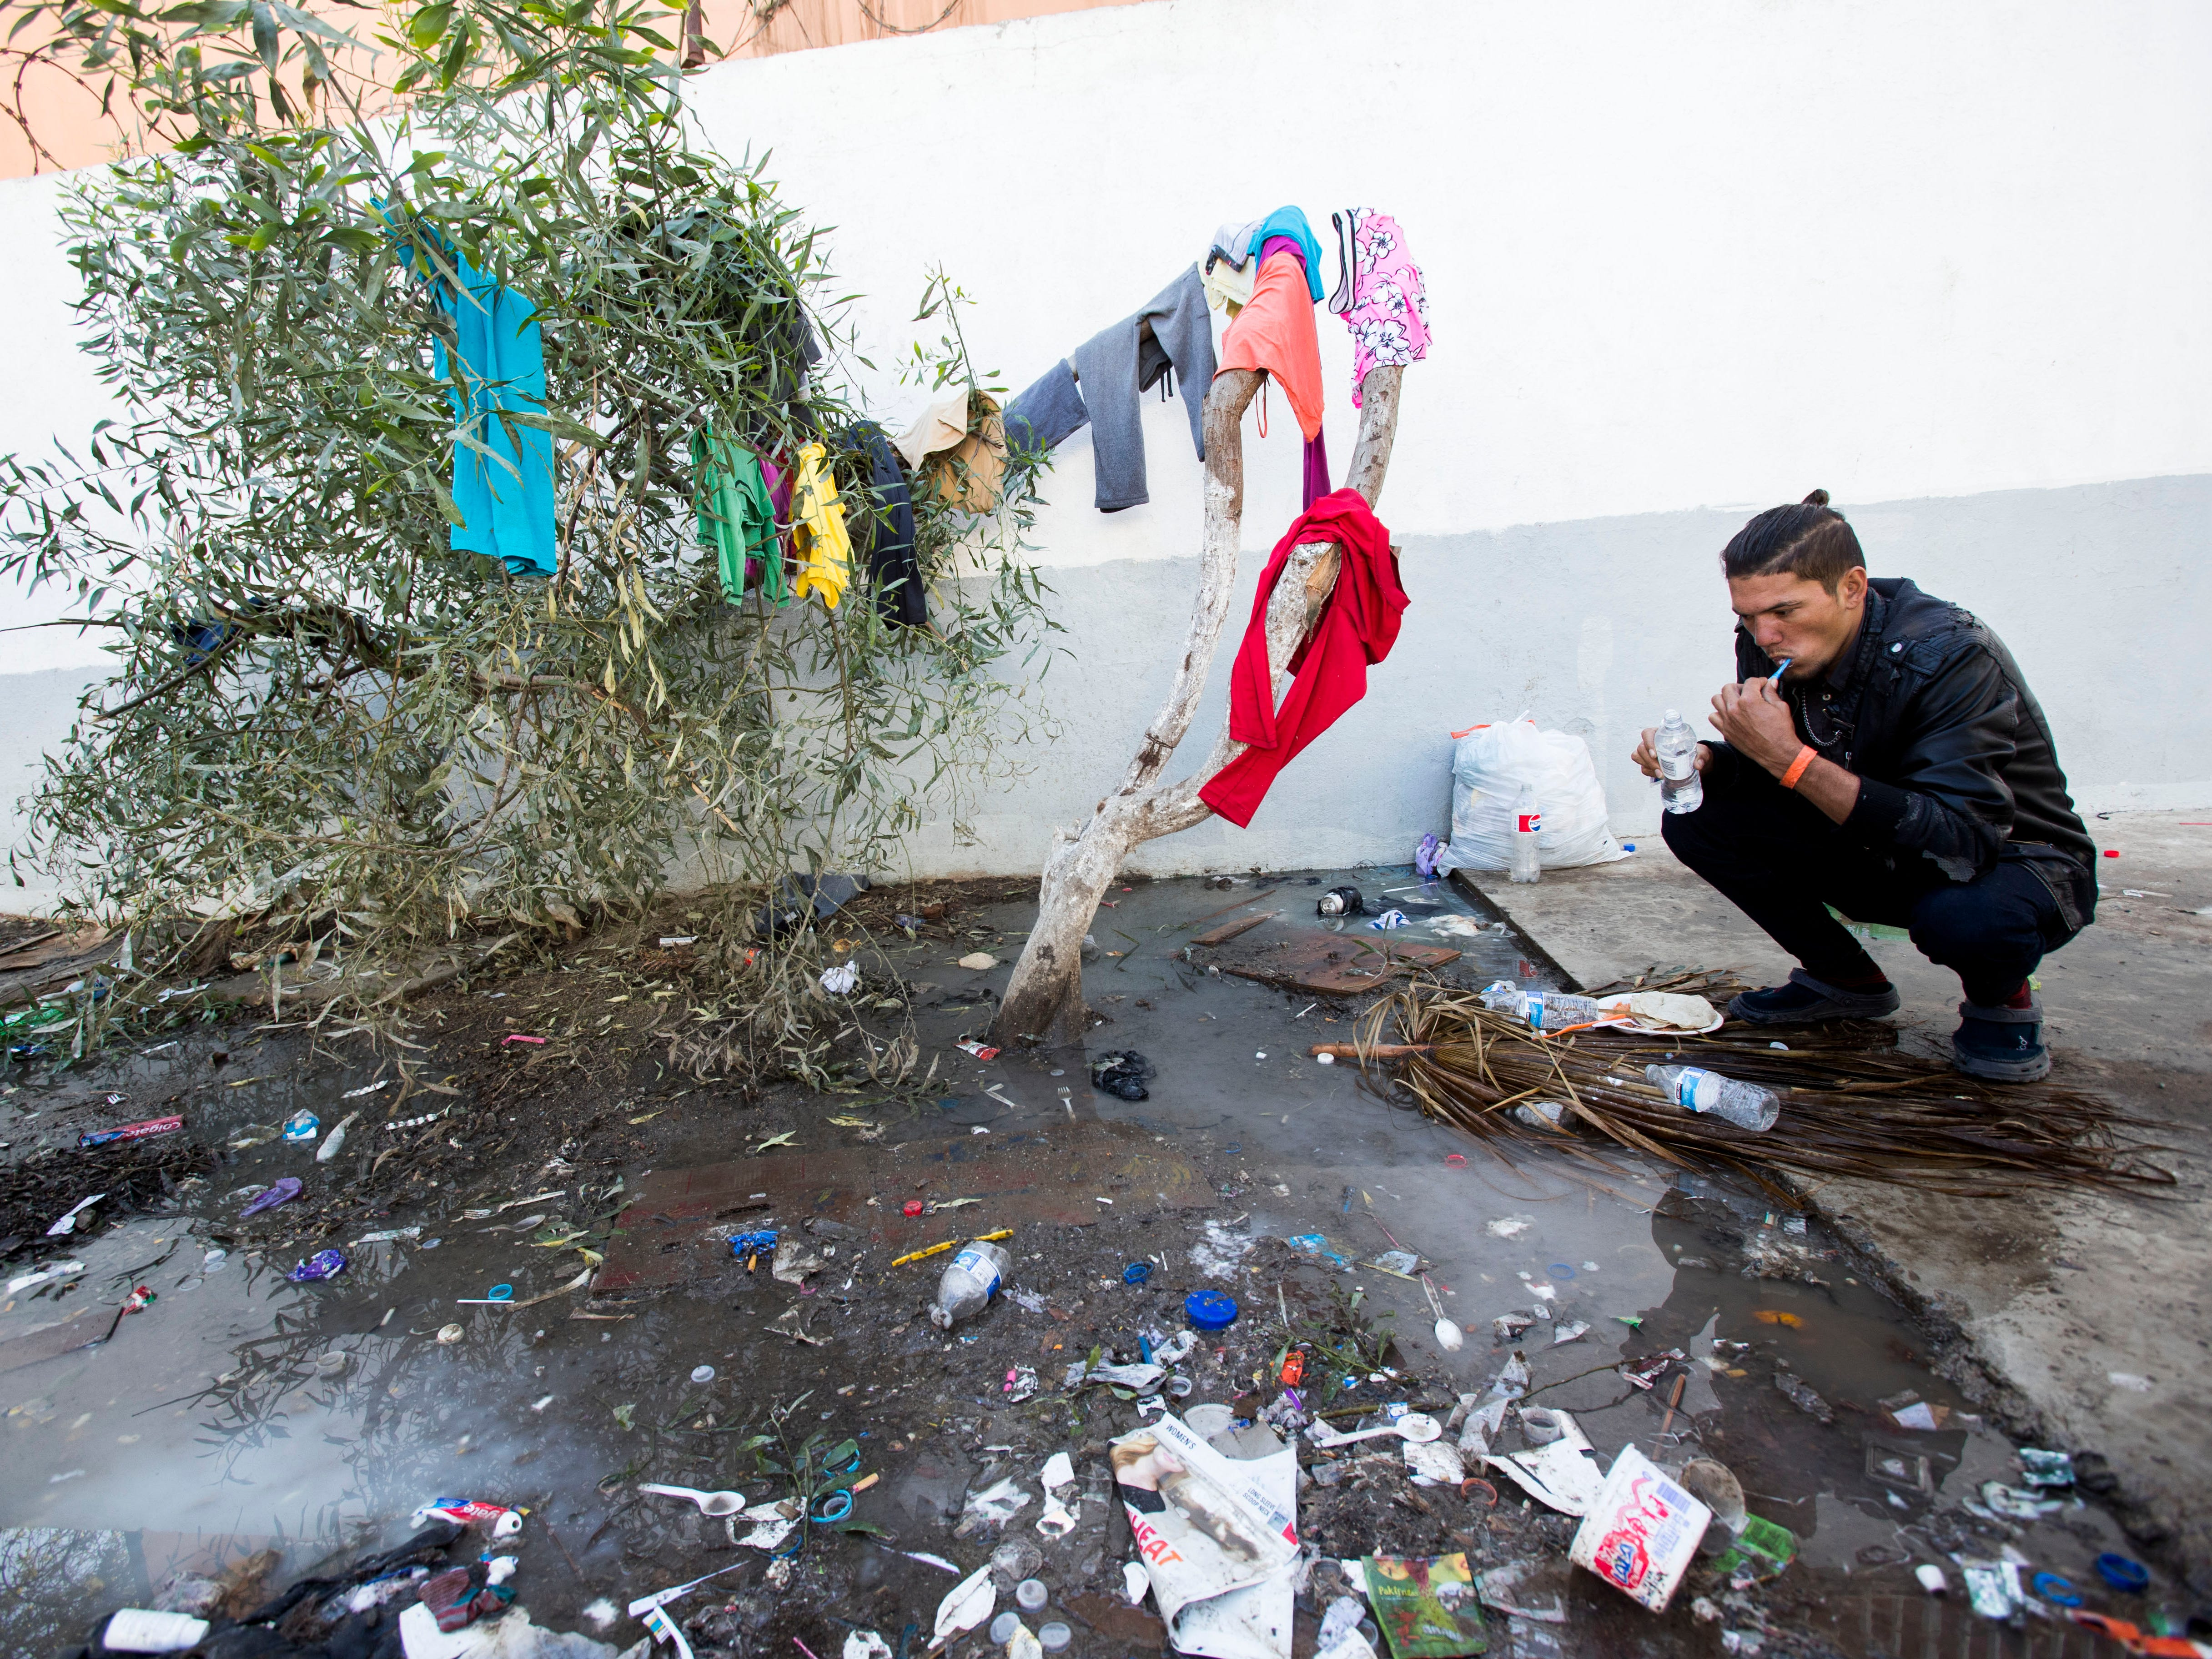 A migrant washes his teeth at the Benito Juarez sports complex shelter, Nov. 27, 2018, in Tijuana, Mexico. The shelter has a maximum capacity of housing 3000 and is currently housing 5851 migrants inside the sports complex turned shelter.